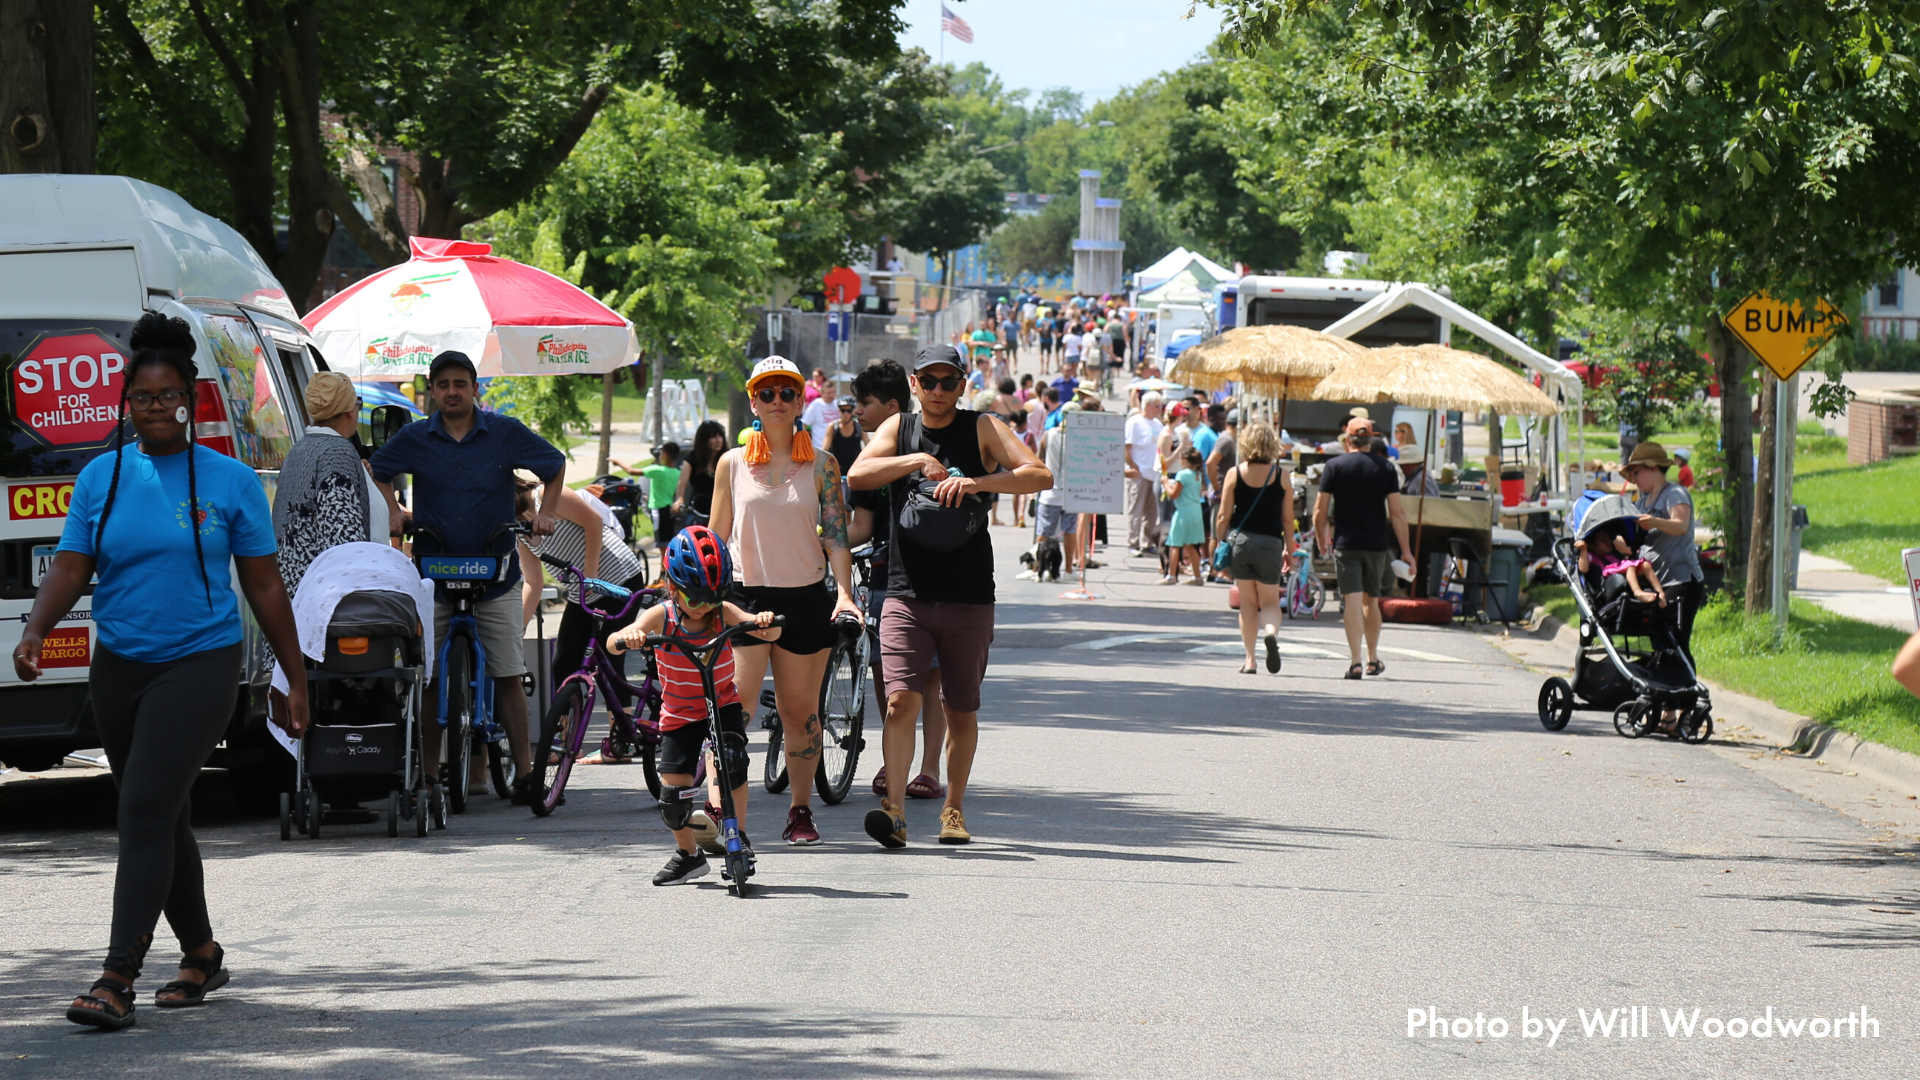 Folks biking, walking, and rolling in the street at Open Streets Northeast